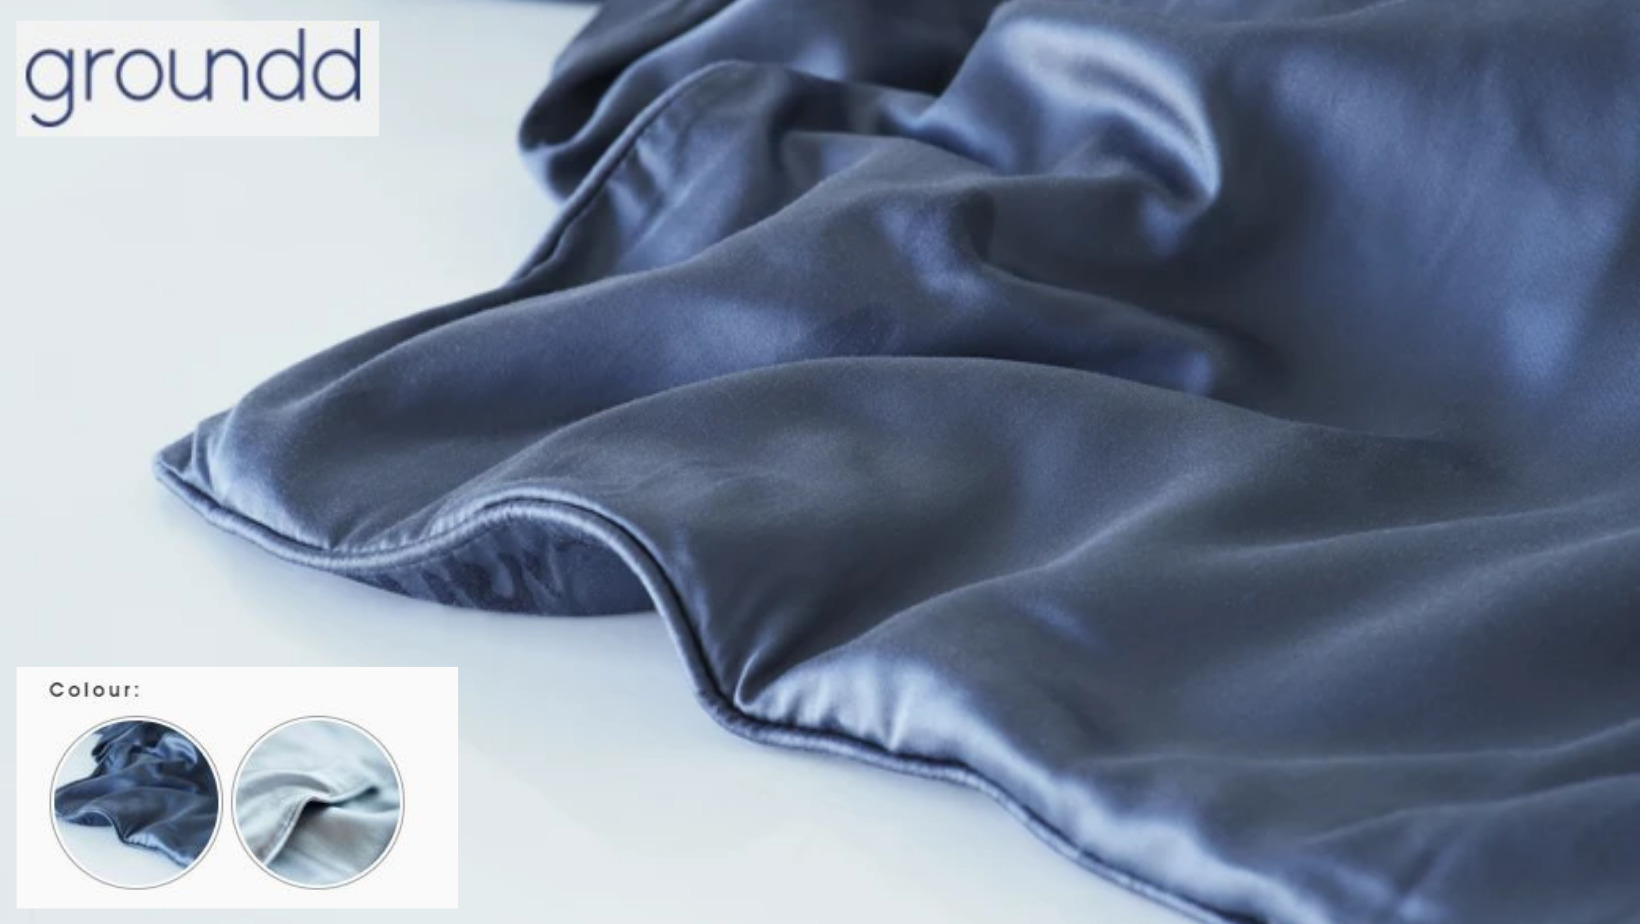 Groundd Weighted Blanket Review NZ - Cover Image